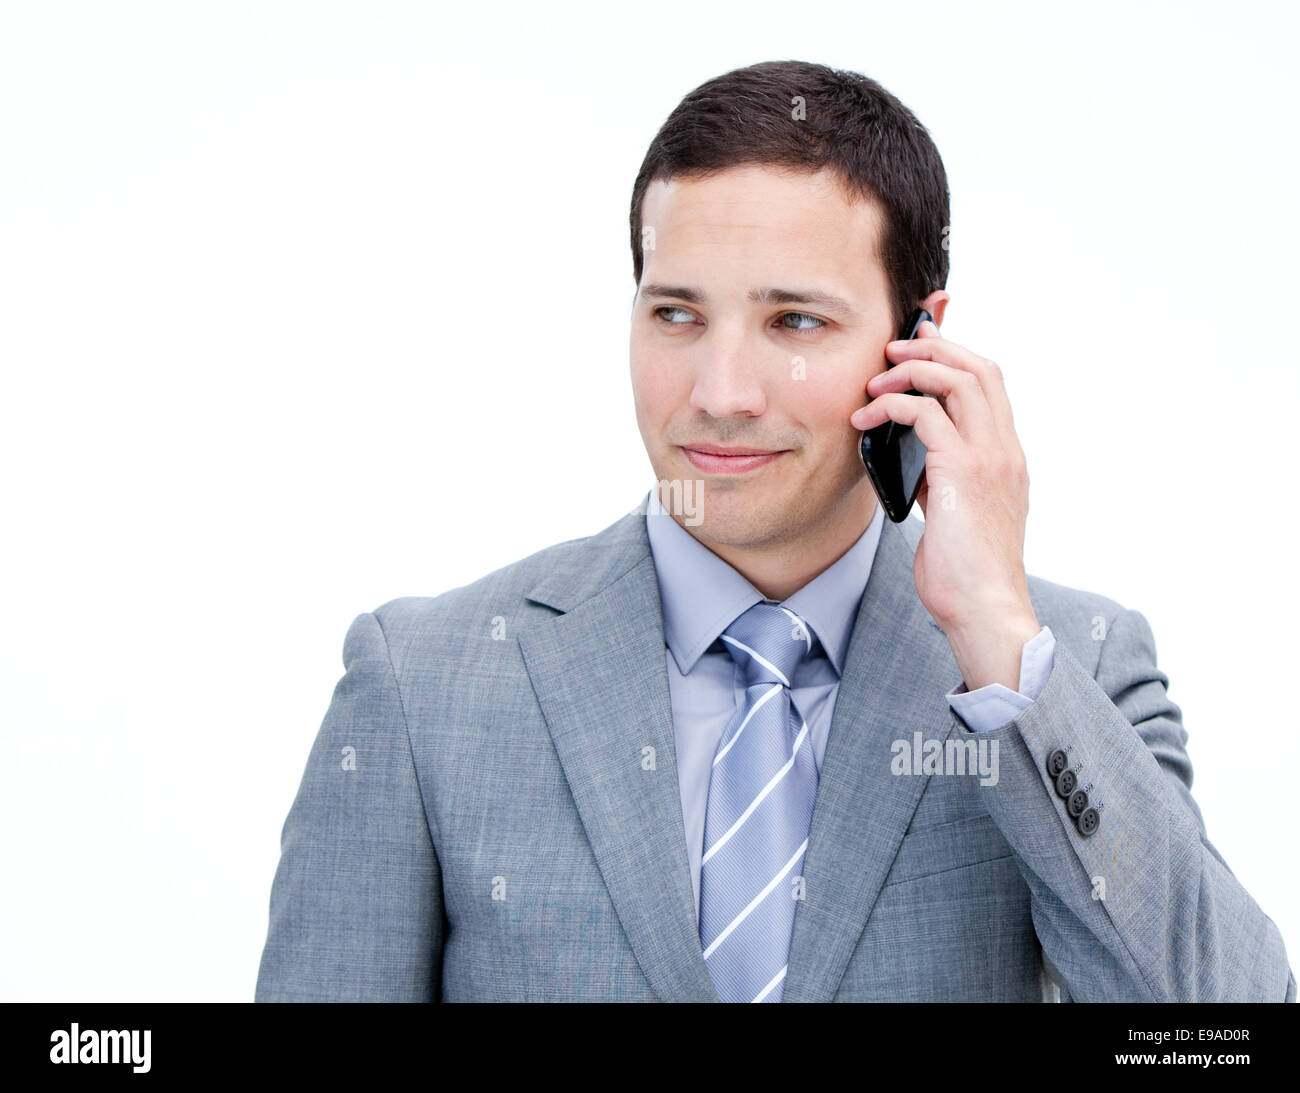 Confident businessman on phone standing - Stock Image